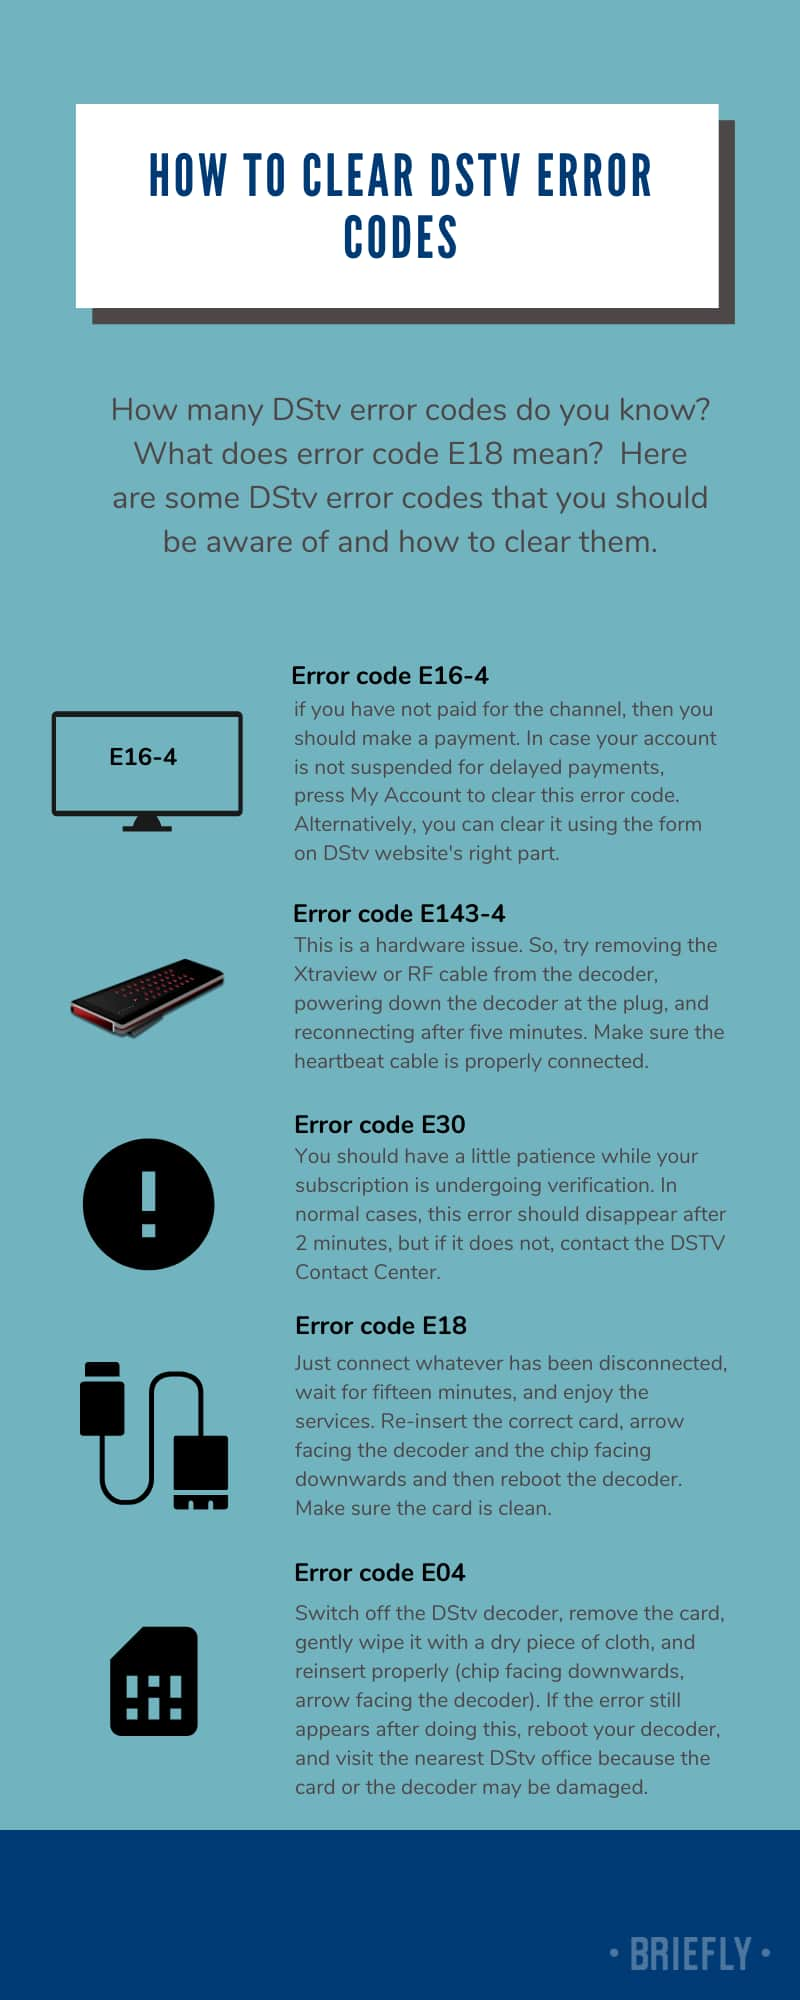 How to clear all DStv error codes